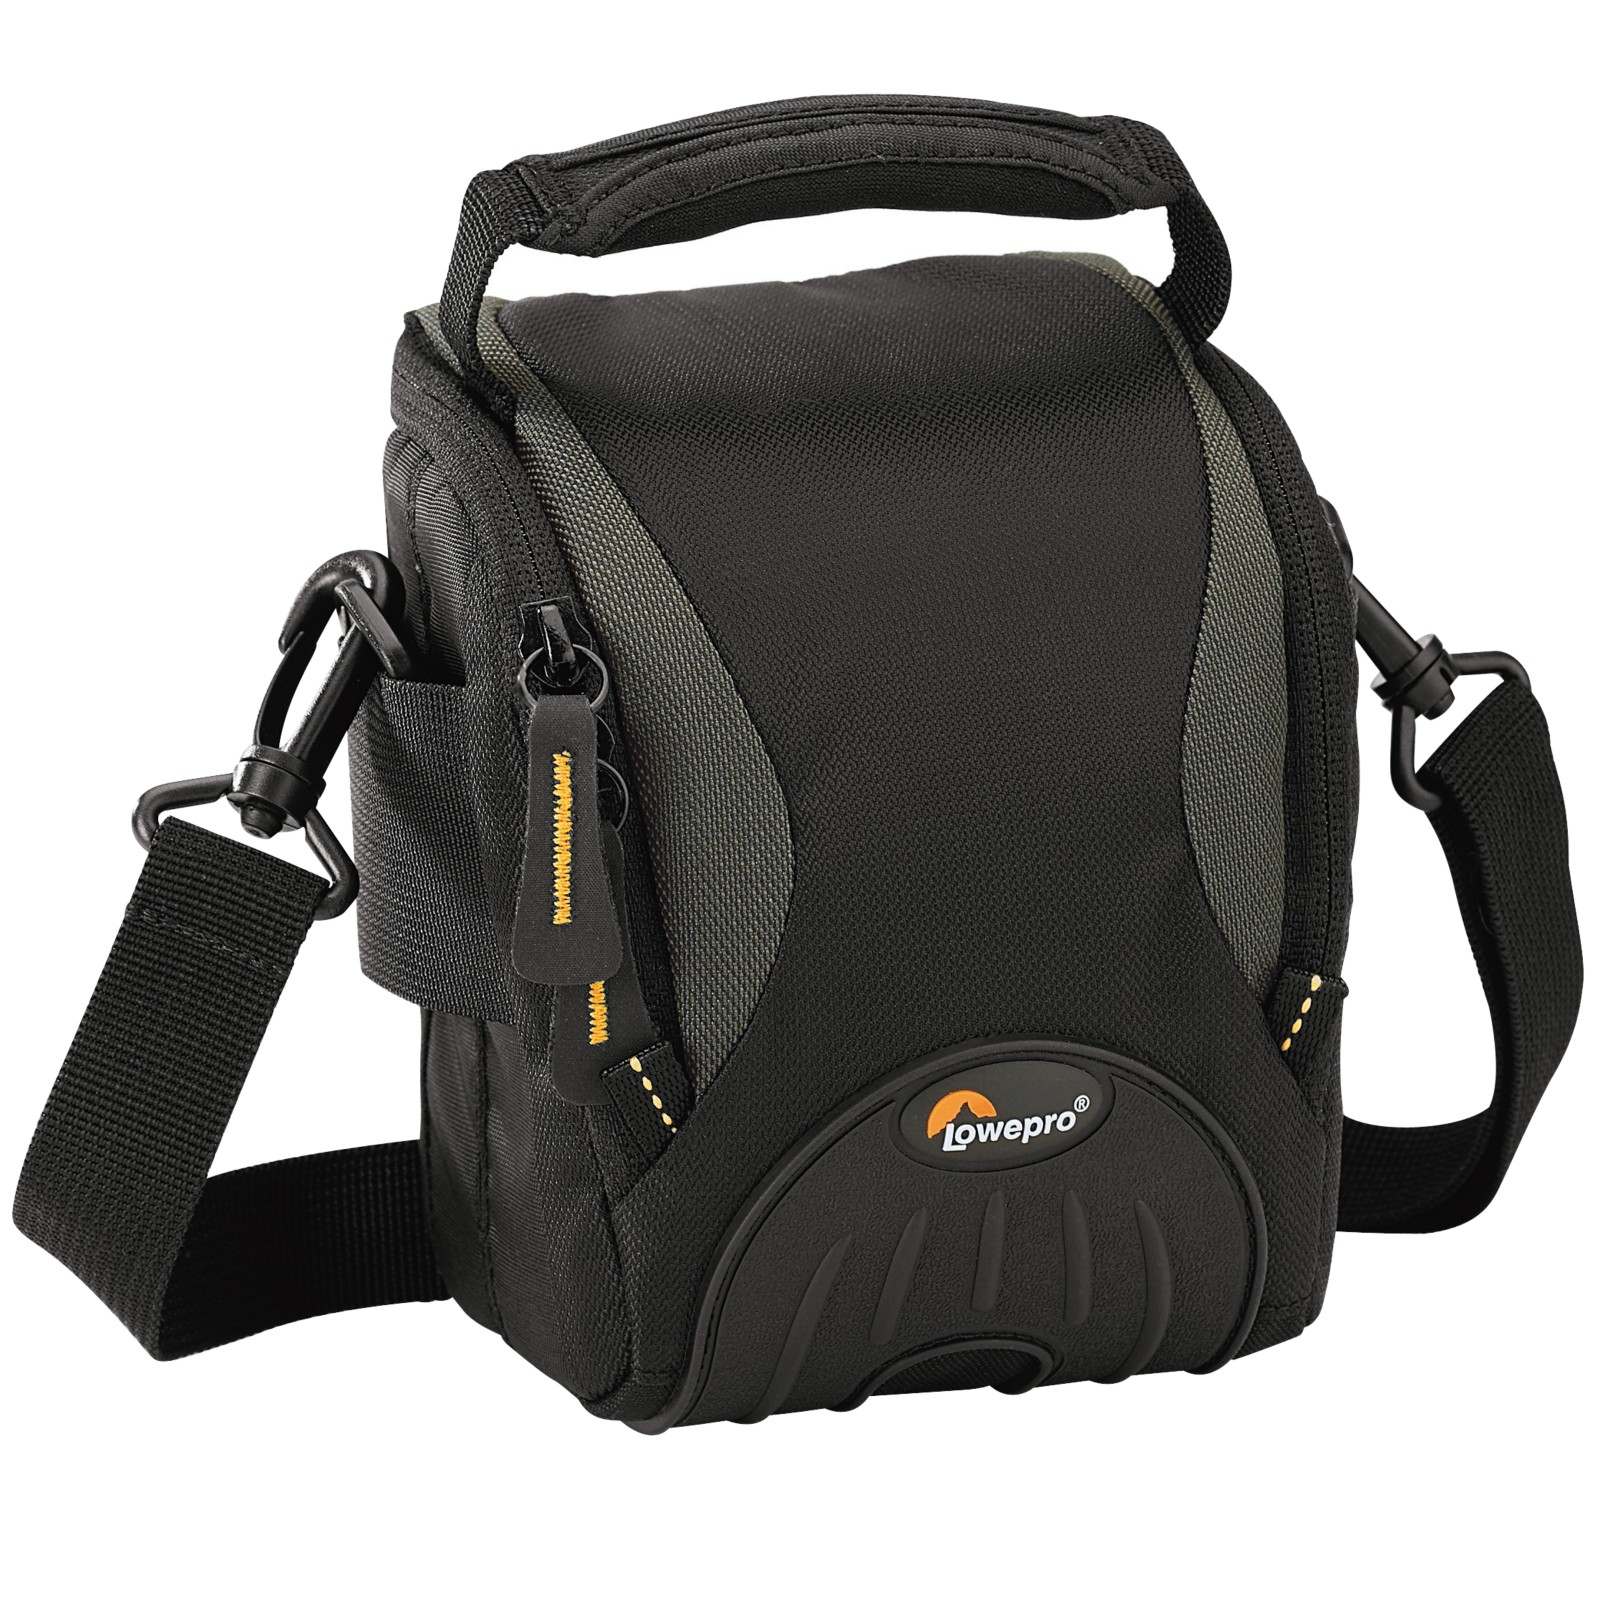 Lowepro Apex 100aw Camera Case Review Best Buy Review